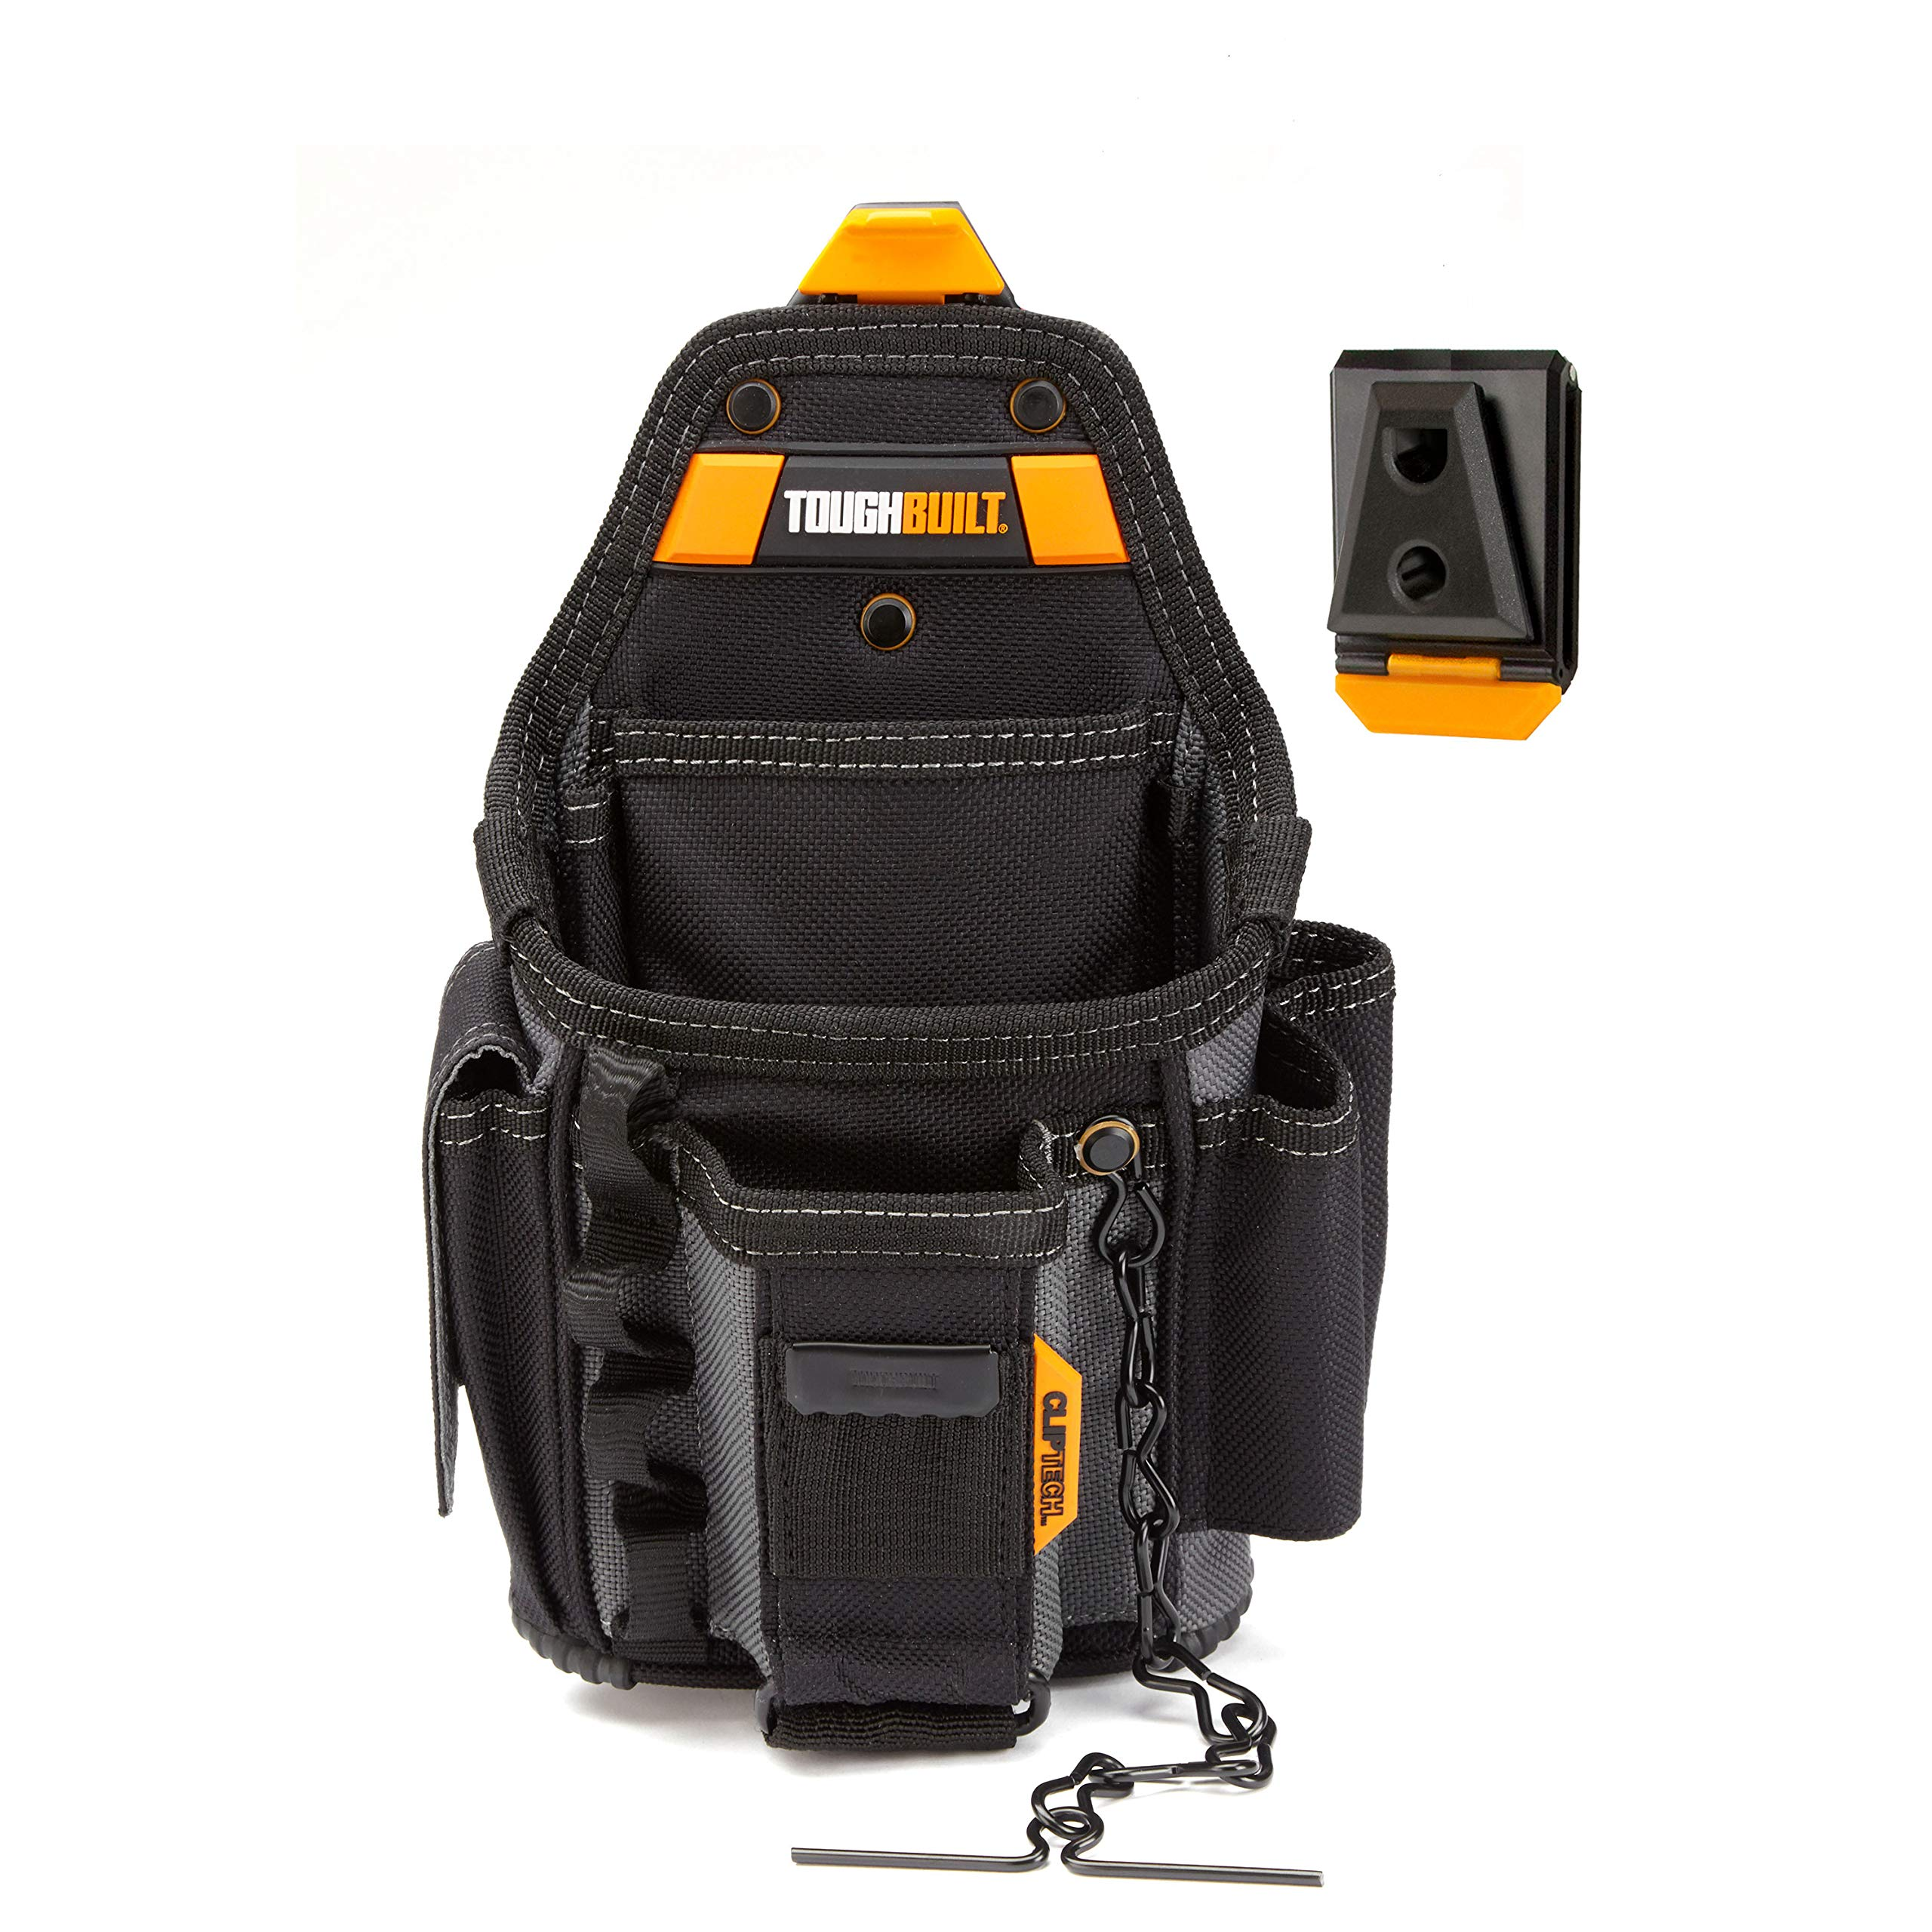 29b5709f3f4 Toughbuilt Electrician ClipTech Pouch and Hub - 13 Pockets and Loops -  Small product image